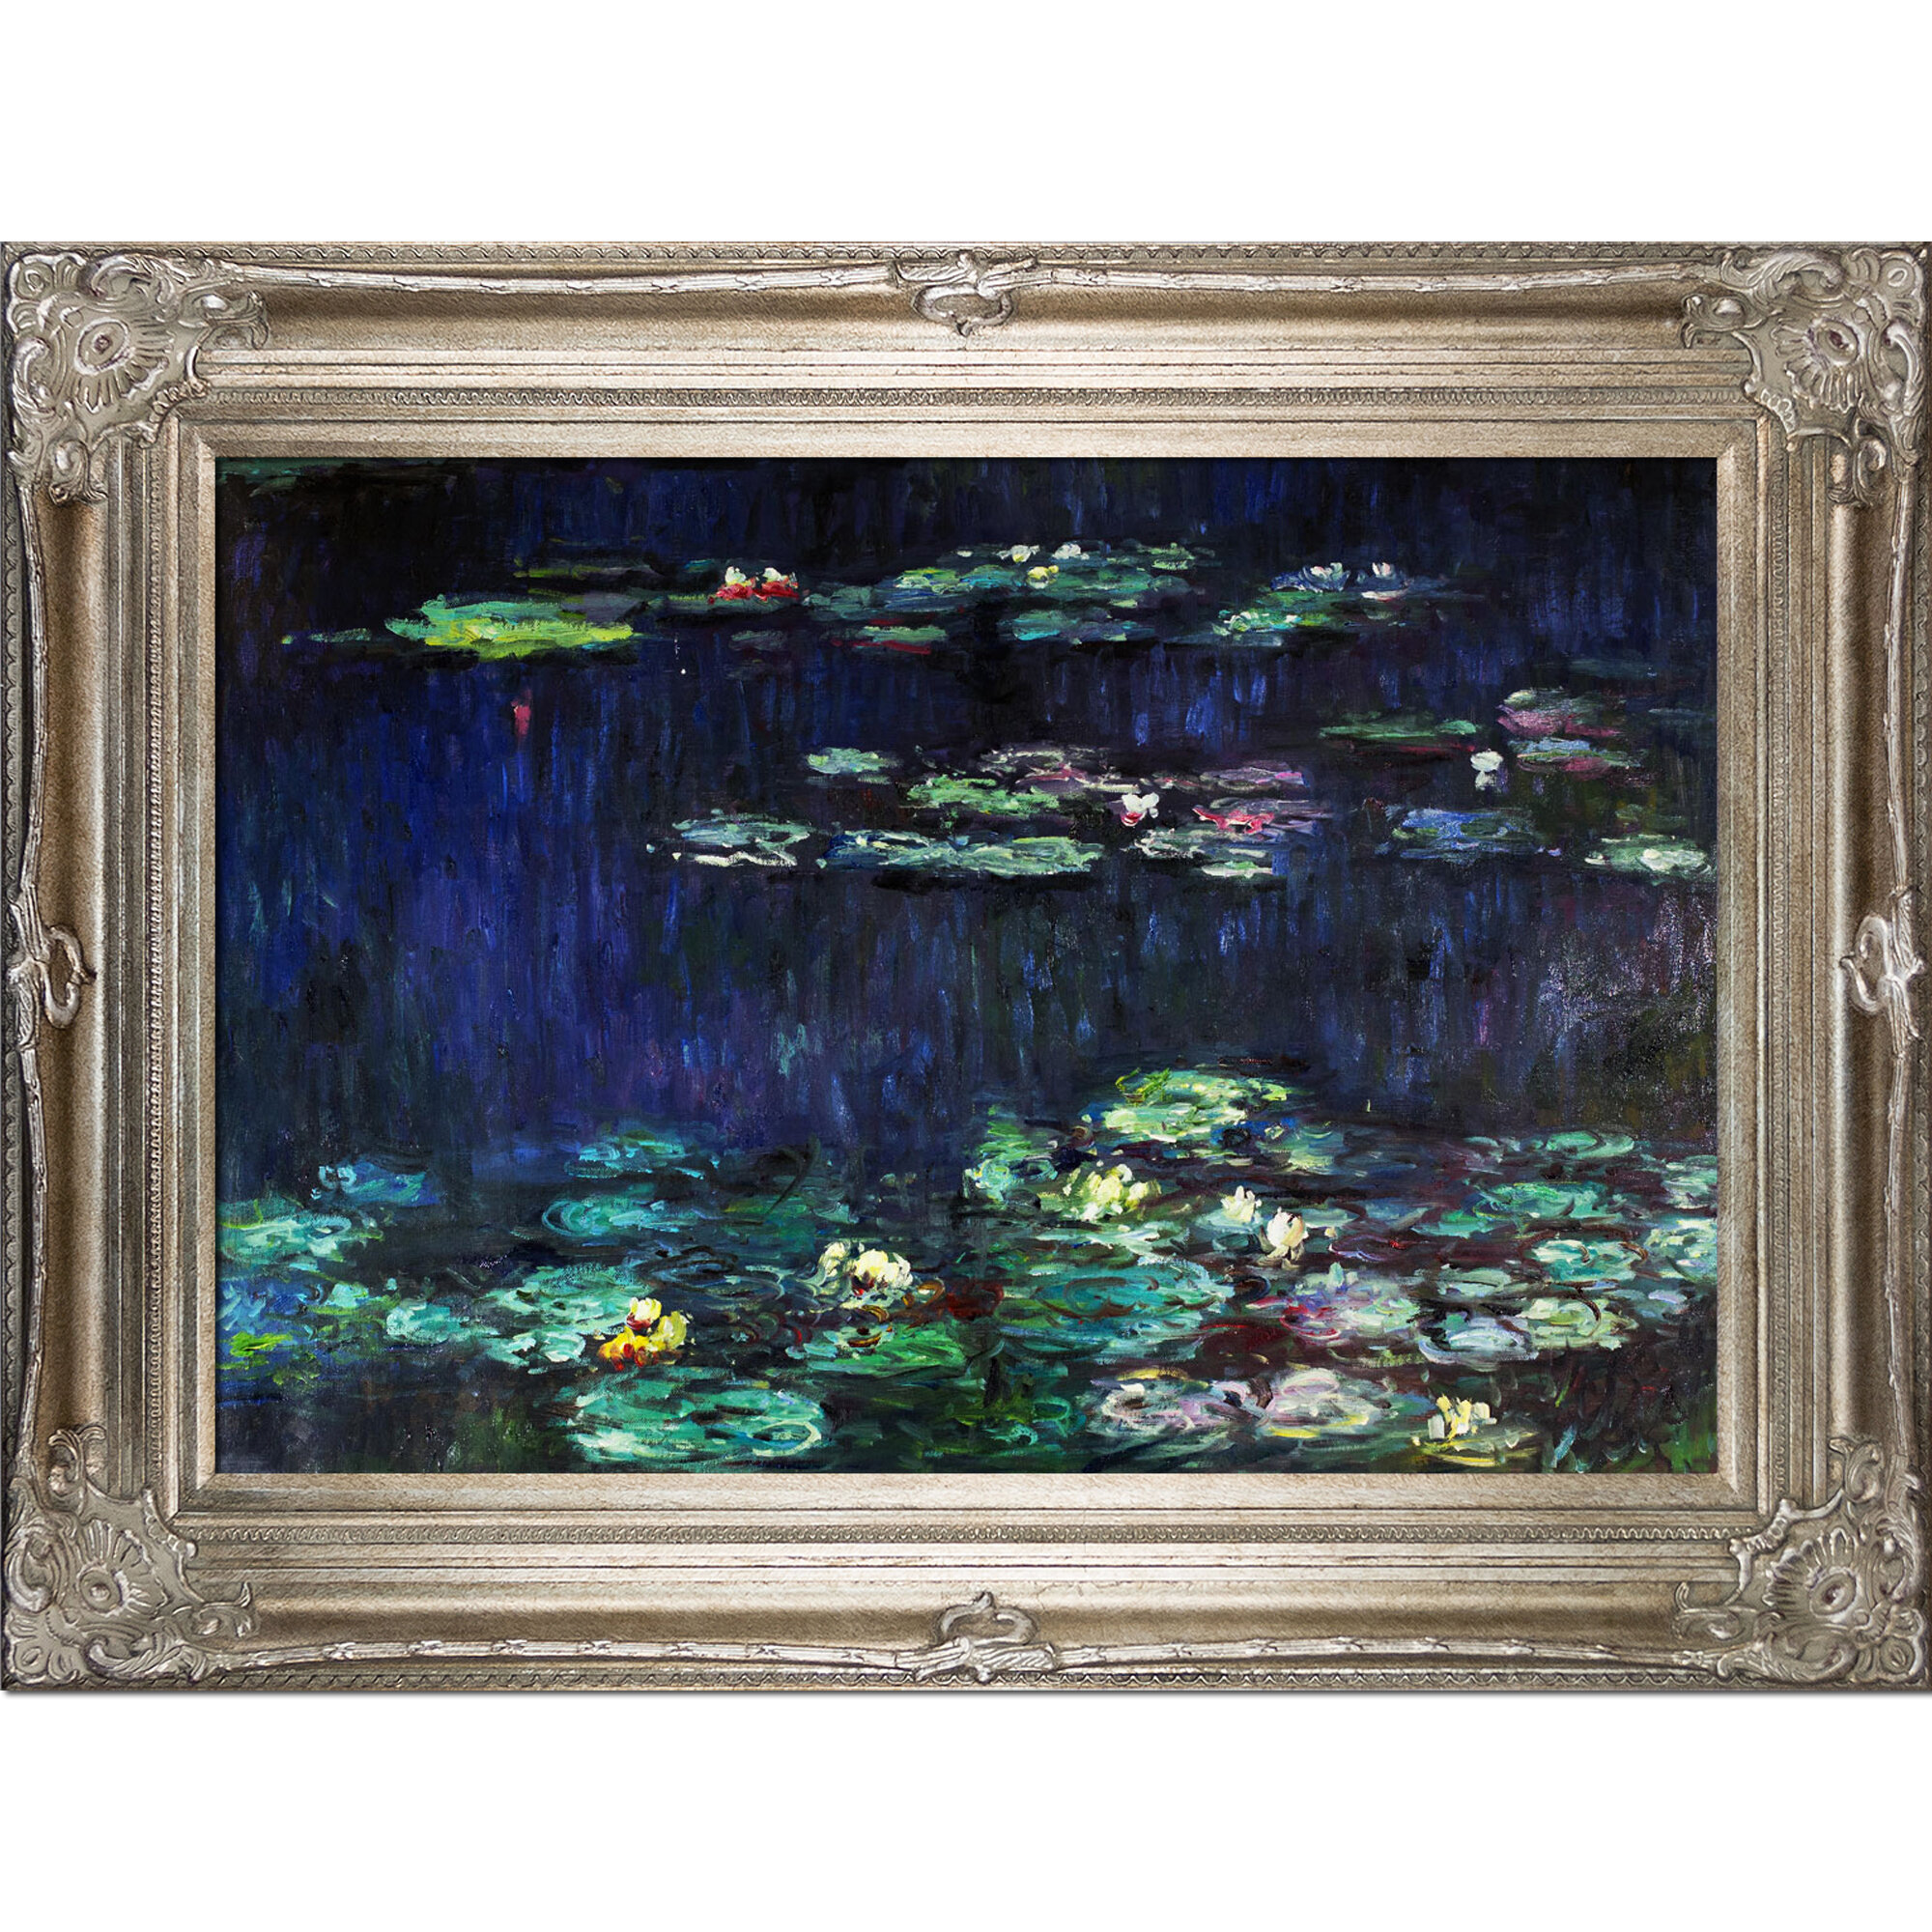 Water Lilies Green Reflections By Claude Monet Framed Painting Print